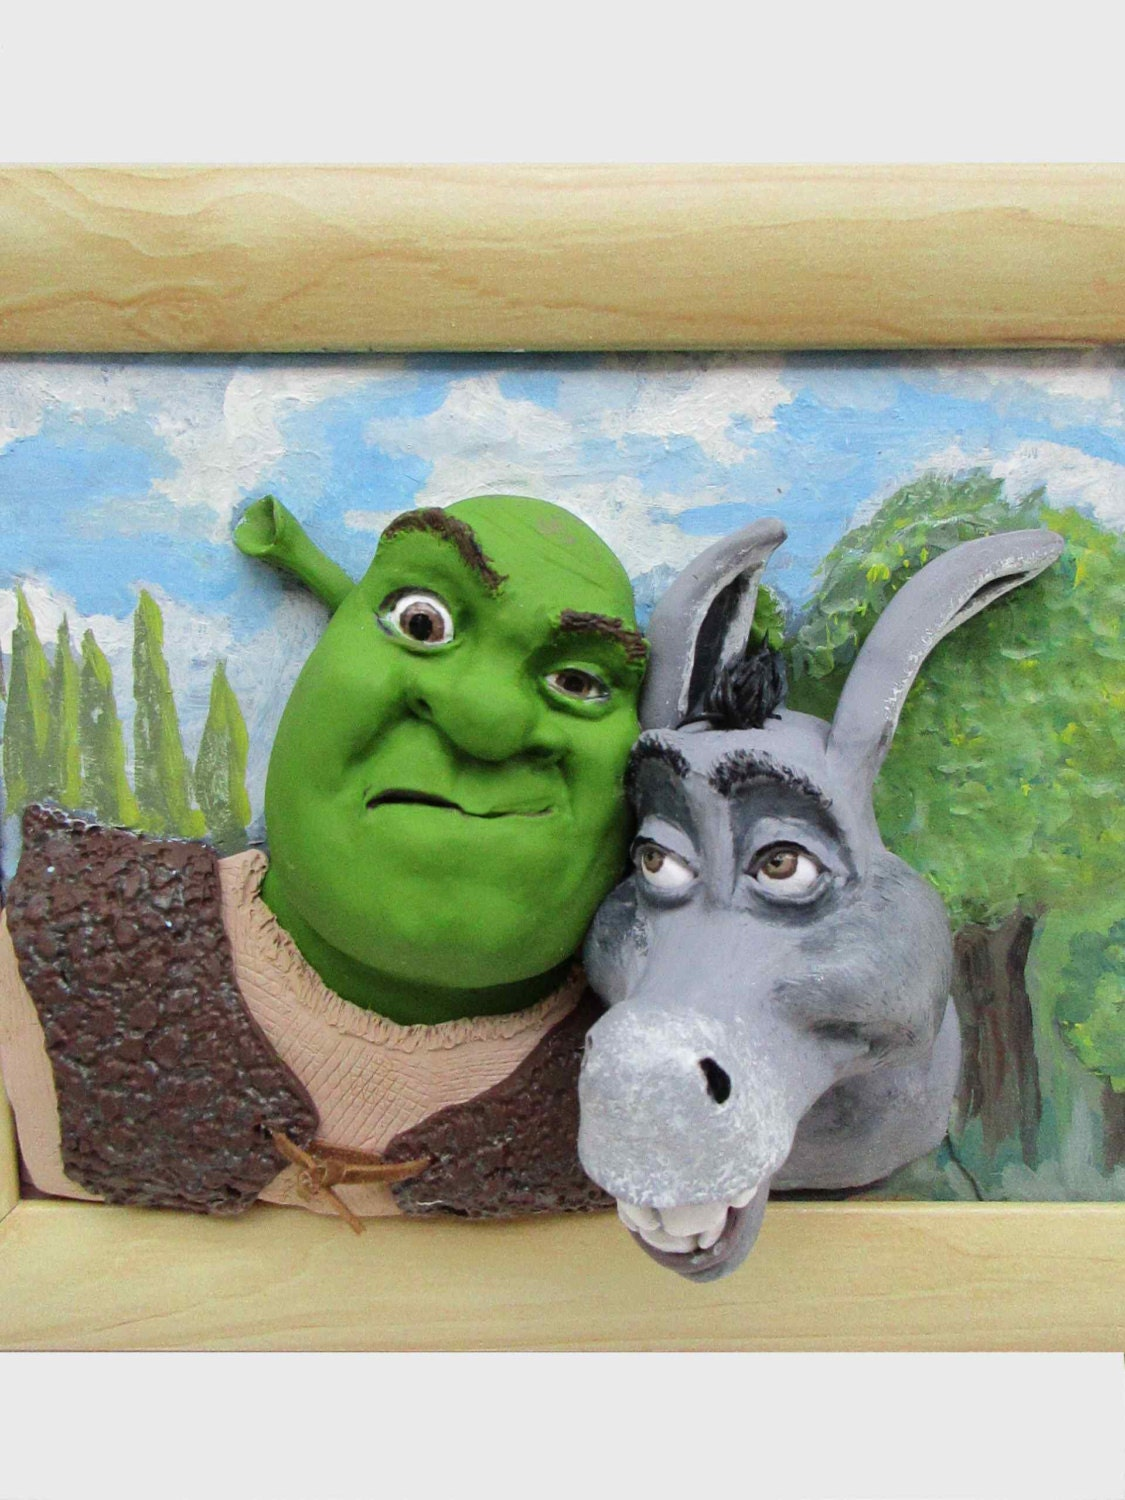 Shrek And Donkey Funny 3d Wall Art Gift For Teen New Room